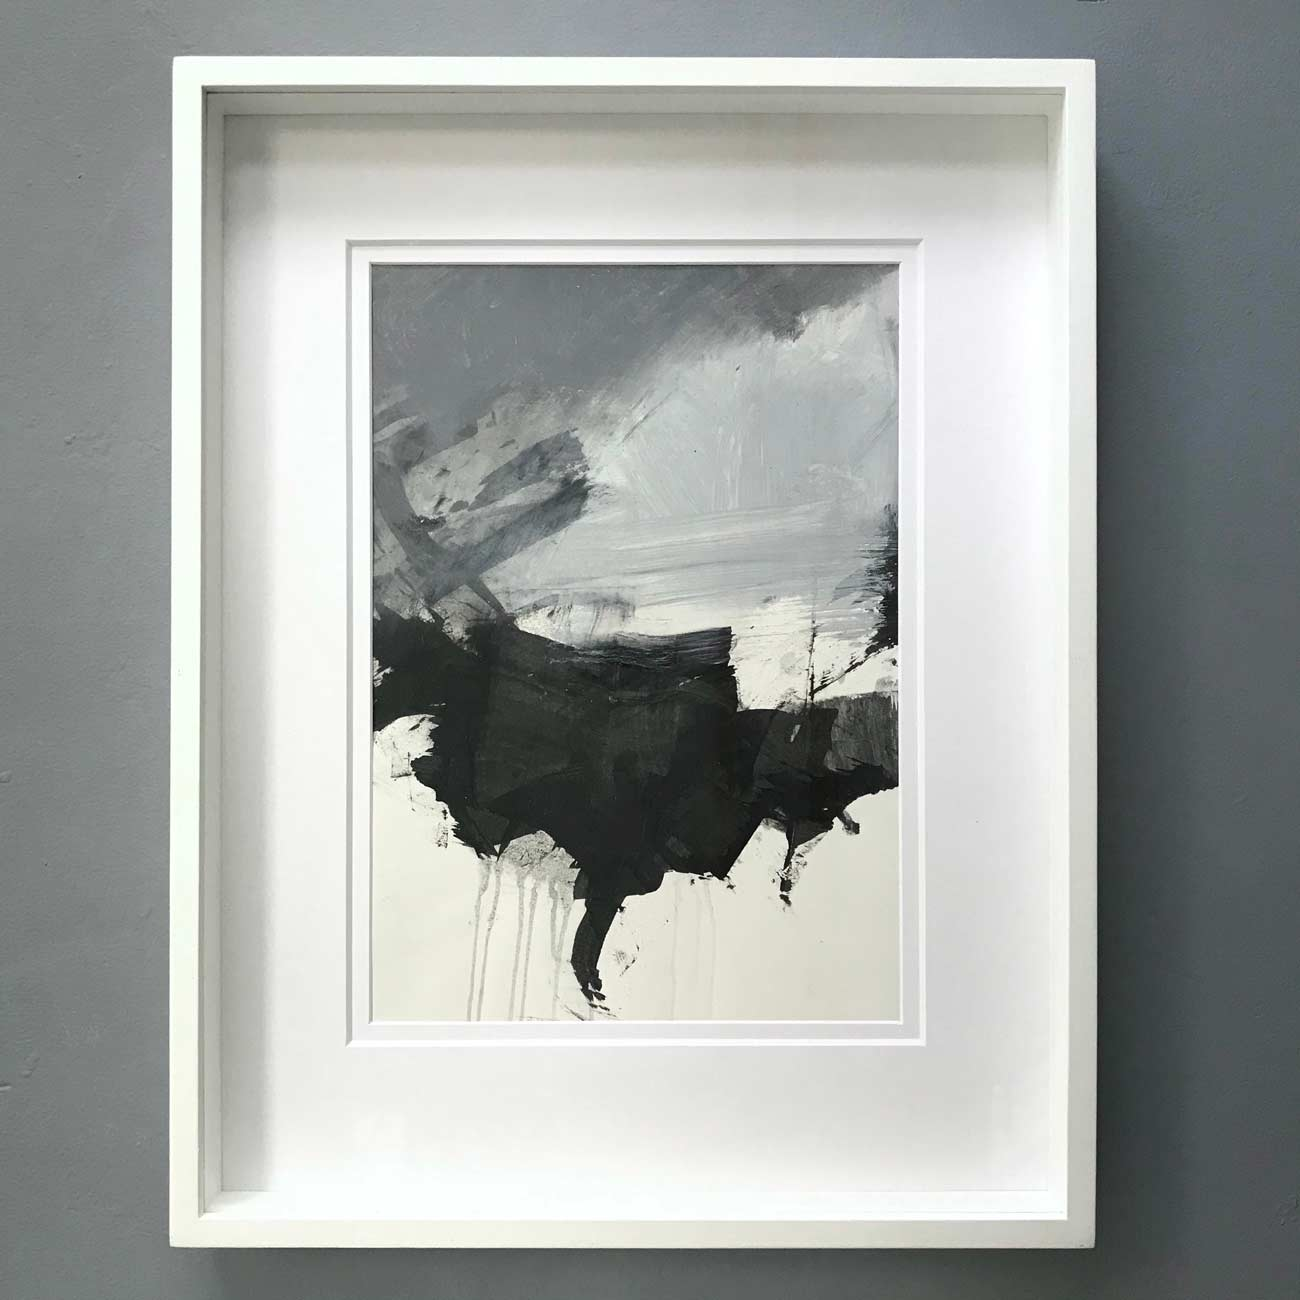 Out There framed by Neil Canning. Studio Collection Winter 2020